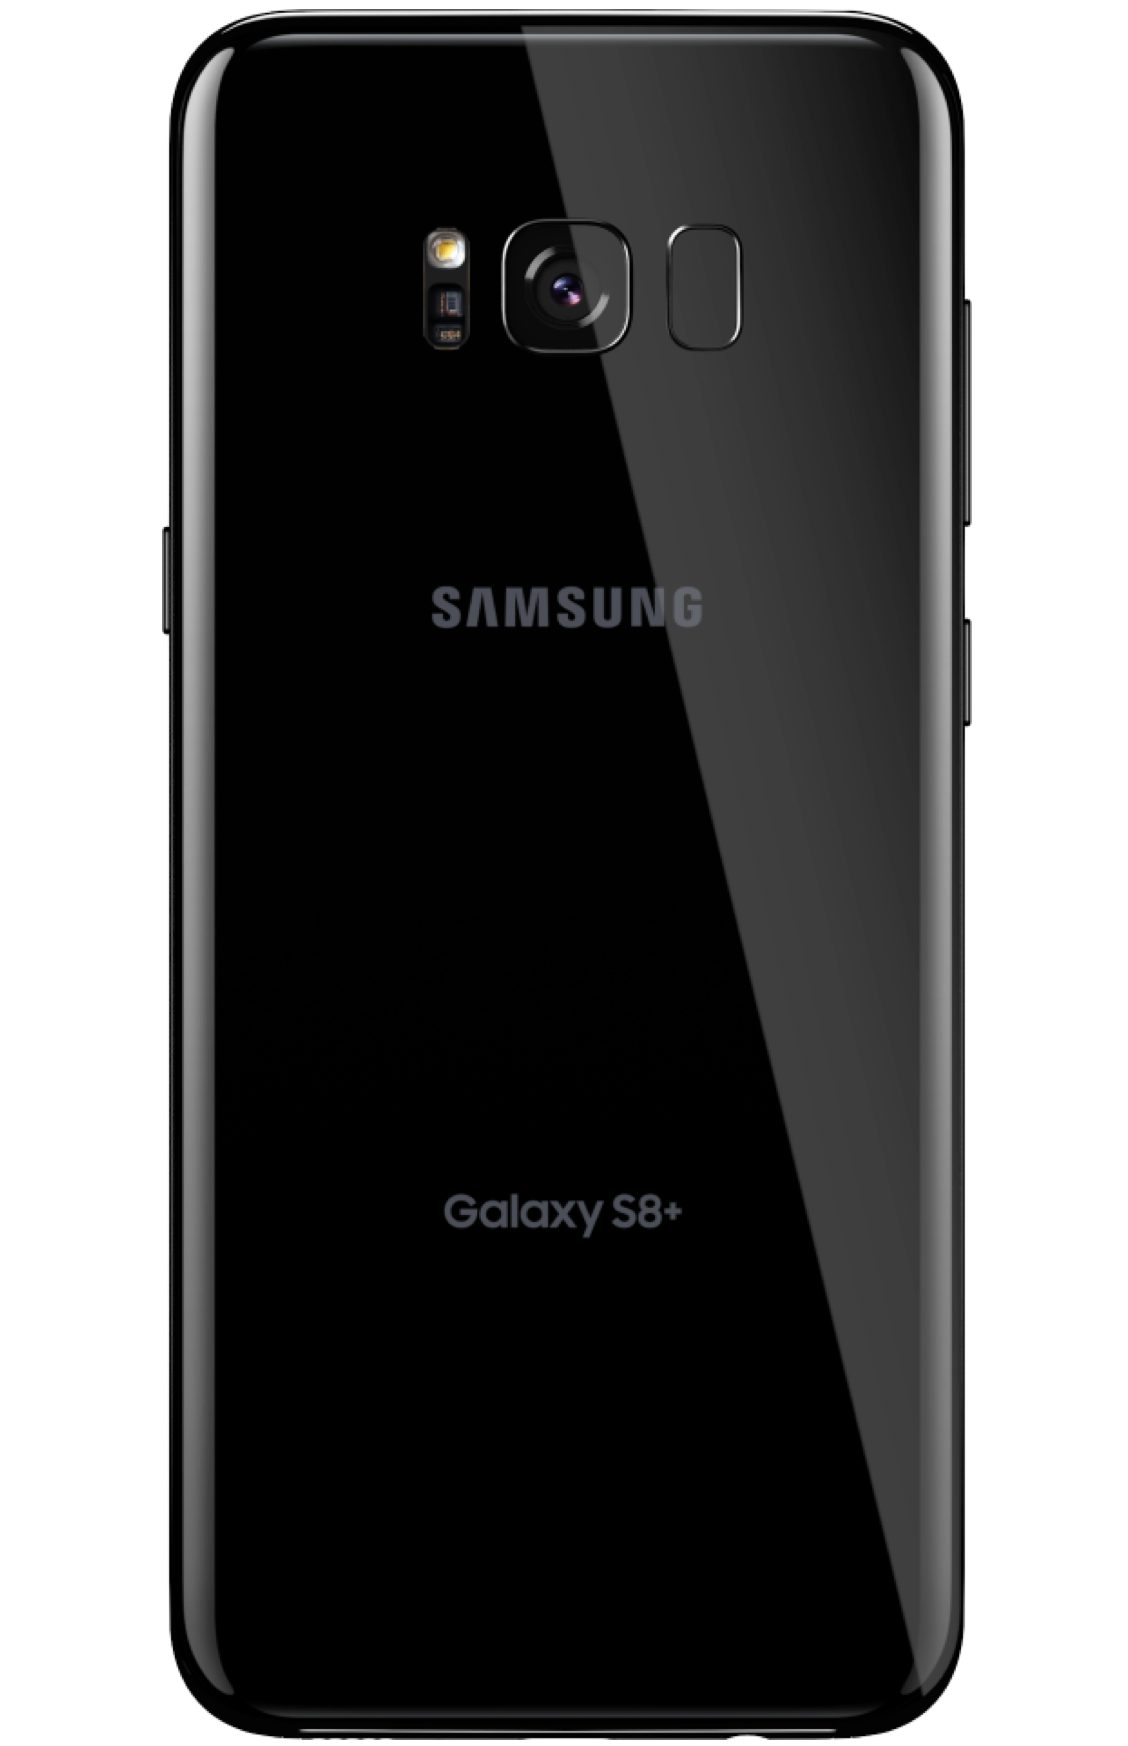 Galaxy S8+ Pre-Owned, 64GB, Midnight Black, Boost Mobile